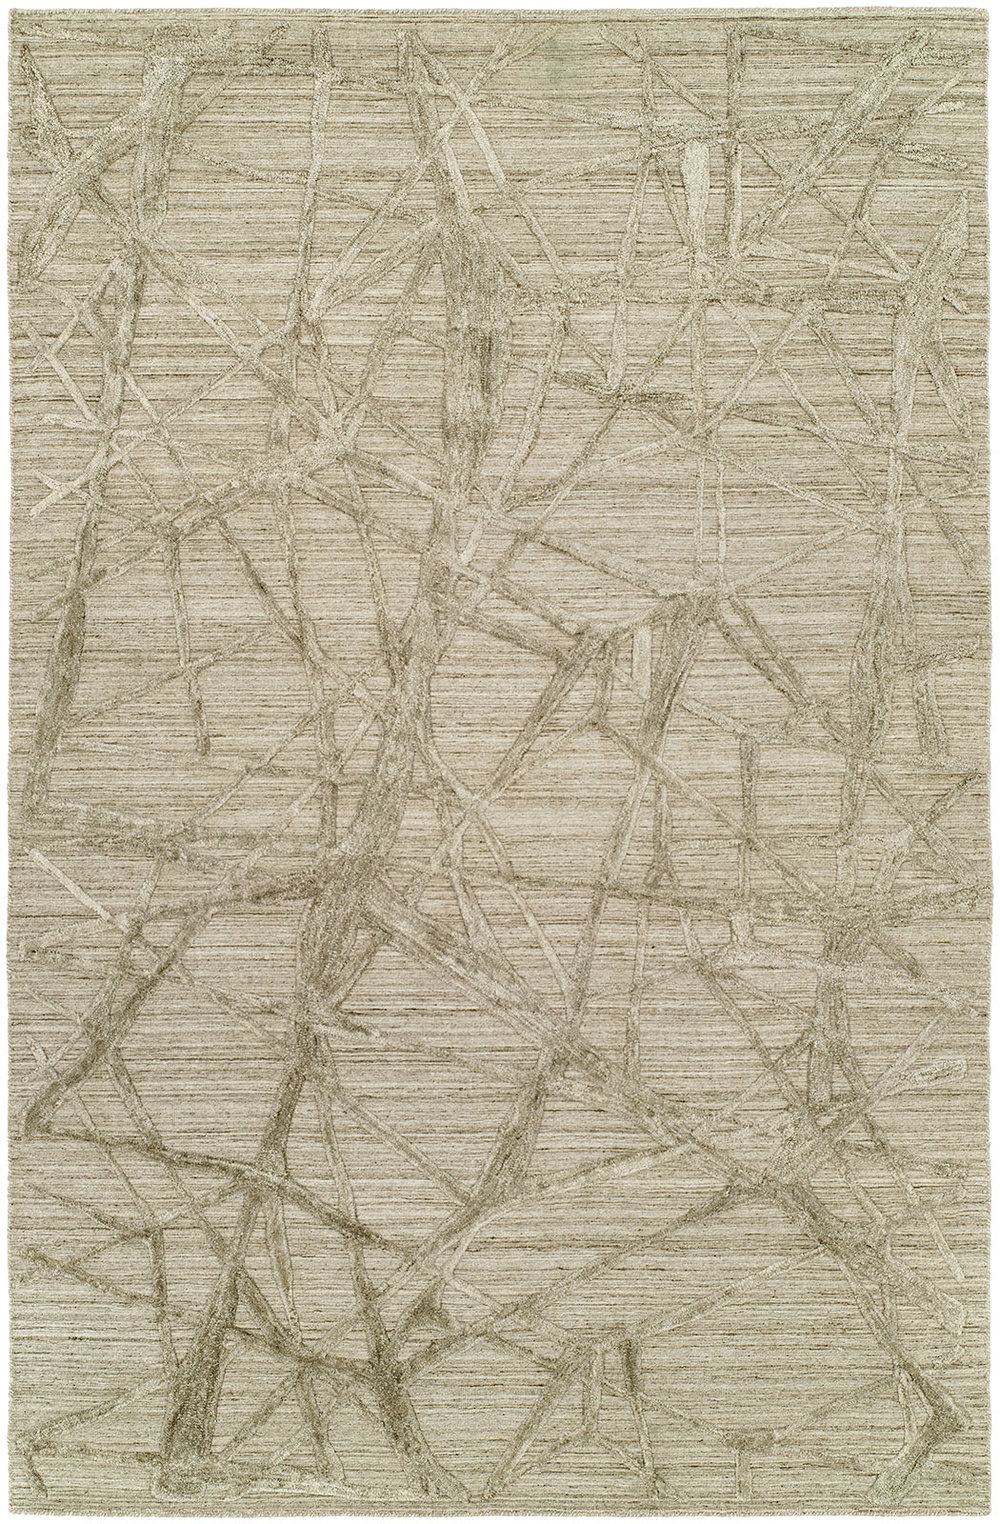 Rug #003635 Retail: $3330.00 Sale: $2331.00 Size: 9'x12' Color: Linen Wool & Silkette Made in India